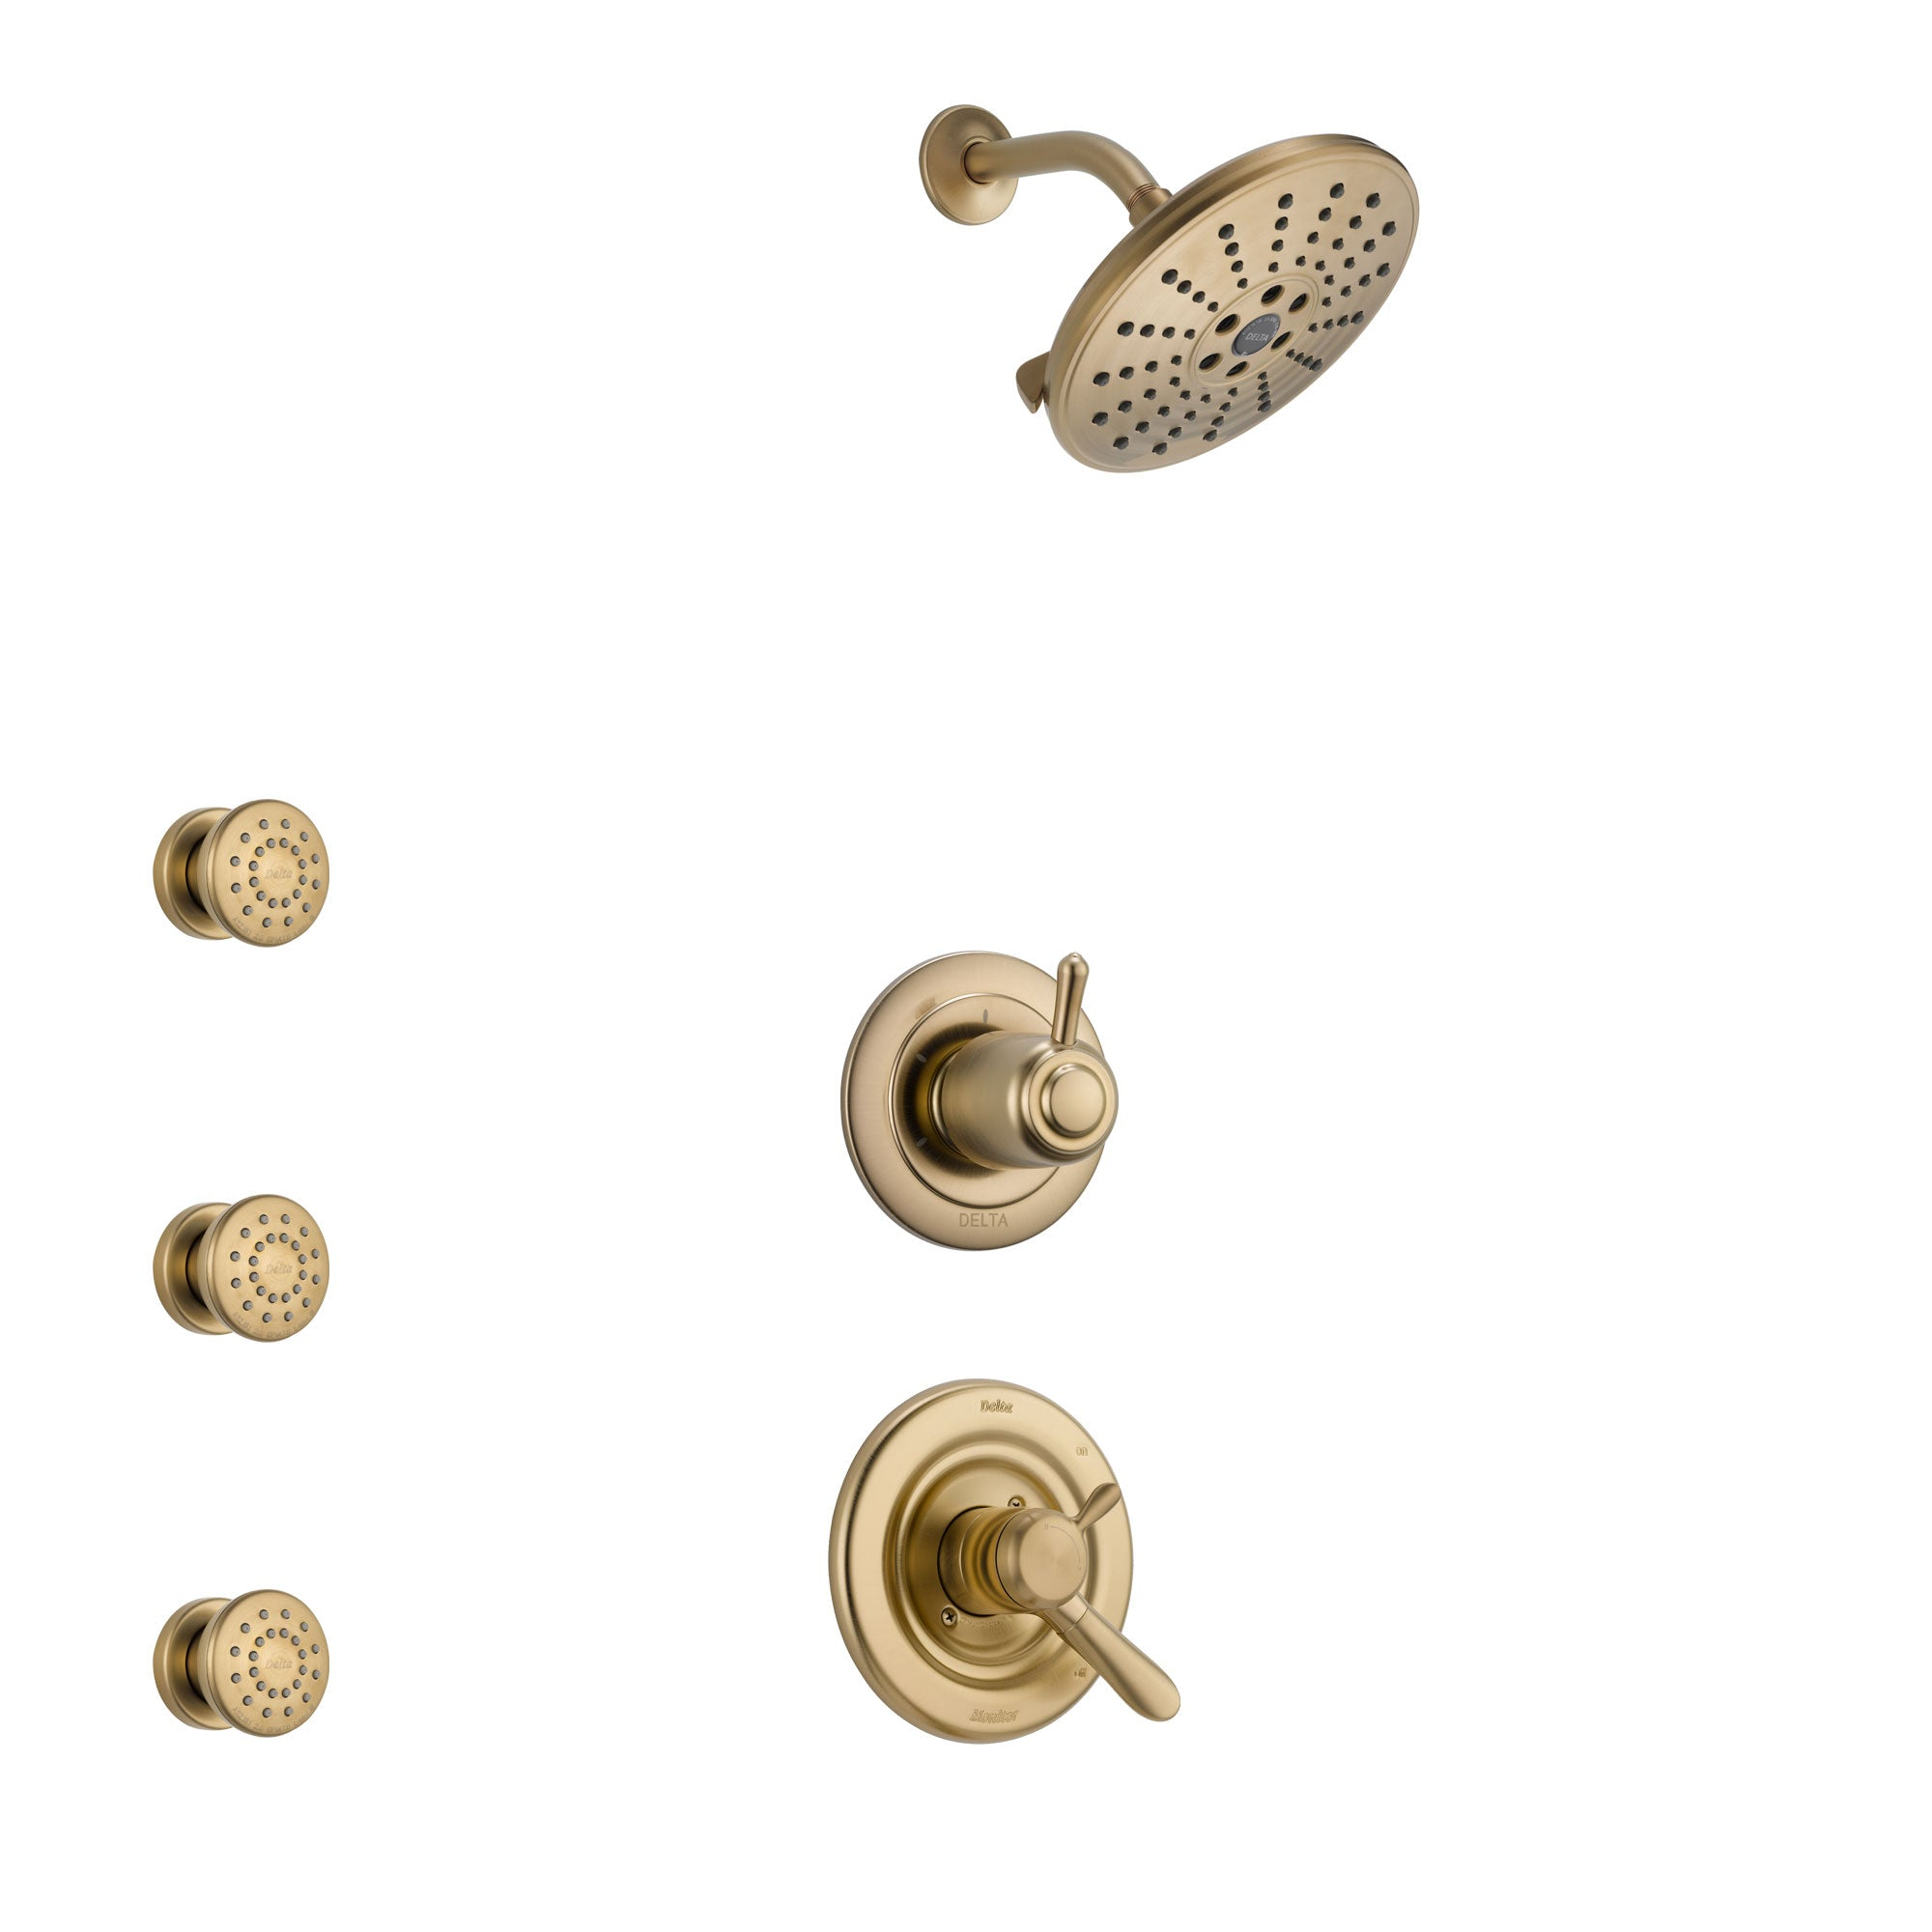 Delta Lahara Champagne Bronze Finish Shower System with Dual Control Handle, 3-Setting Diverter, Showerhead, and 3 Body Sprays SS1738CZ6